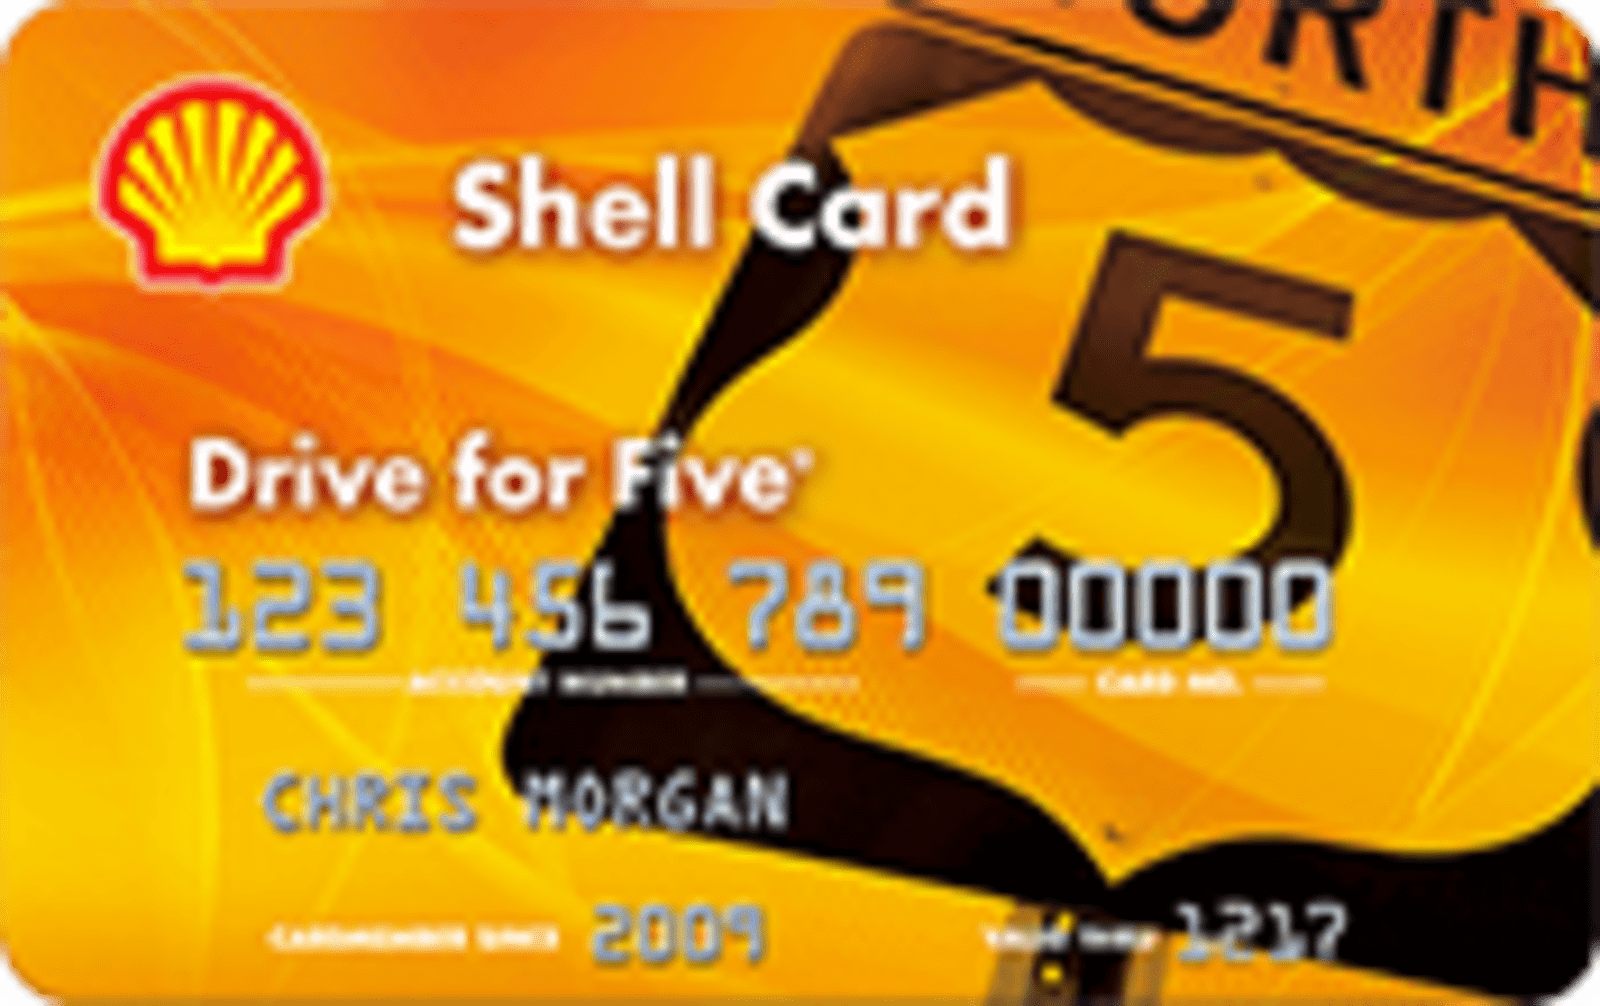 Shell Drive for Five® Credit Card: Should You Use It to Pay